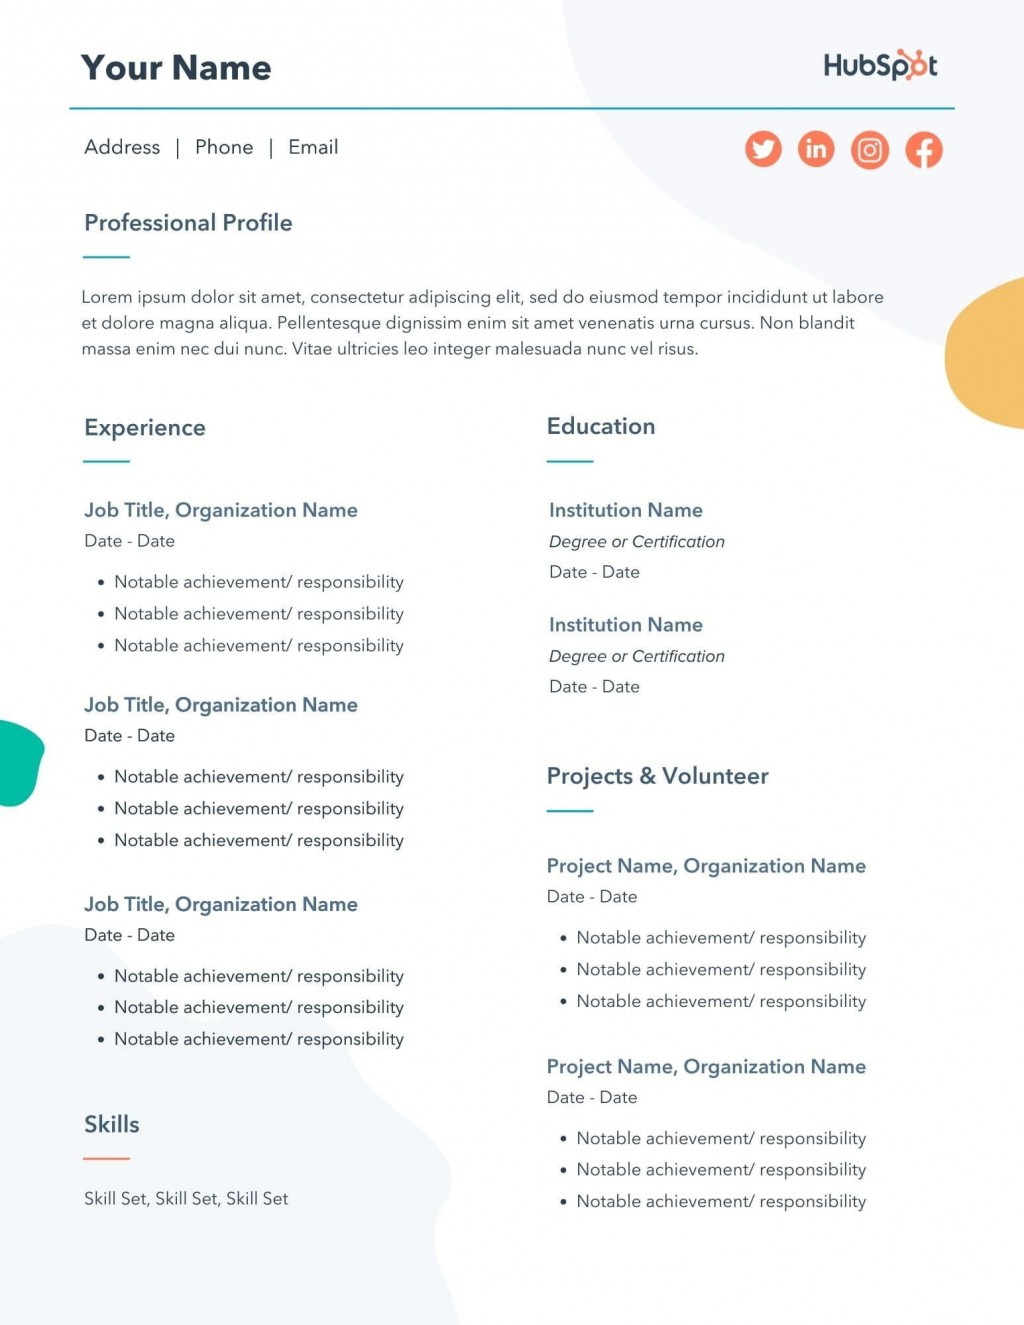 008 Wonderful Resume Template Word 2007 Free Image  Microsoft Office For MLarge